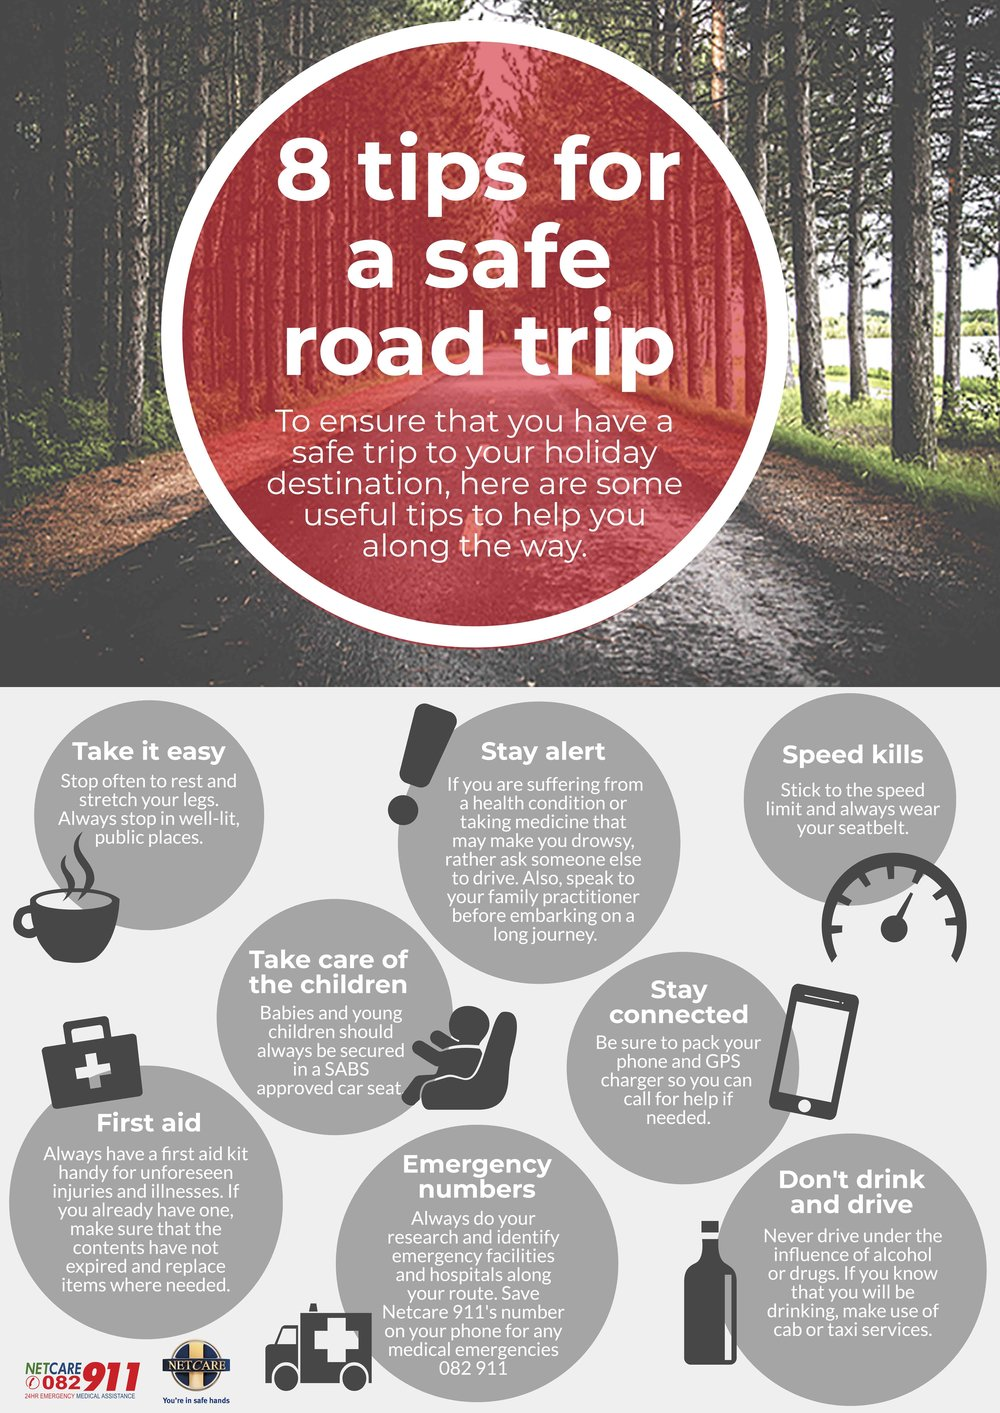 8 Tips for a safe road trip.jpg